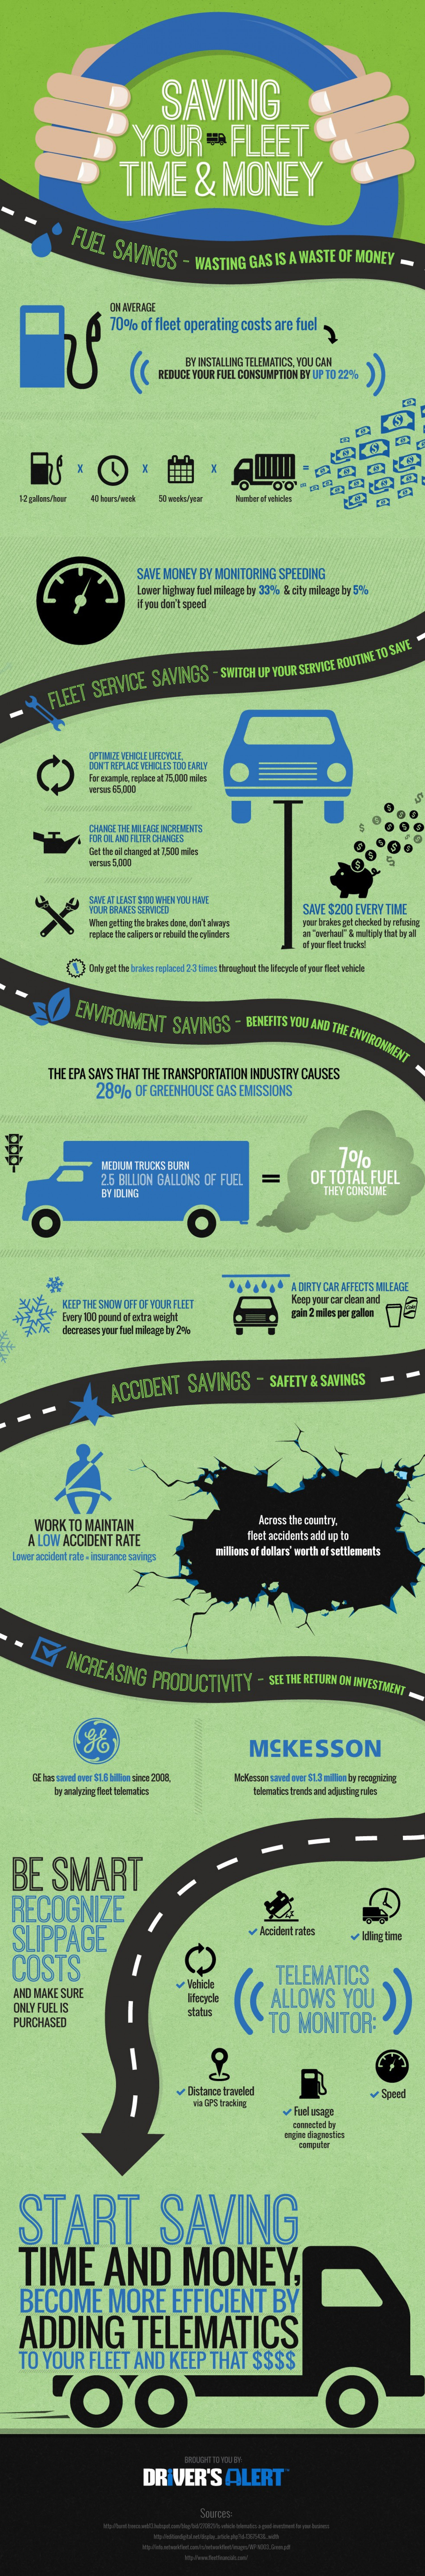 Saving Your Fleet Time & Money Infographic